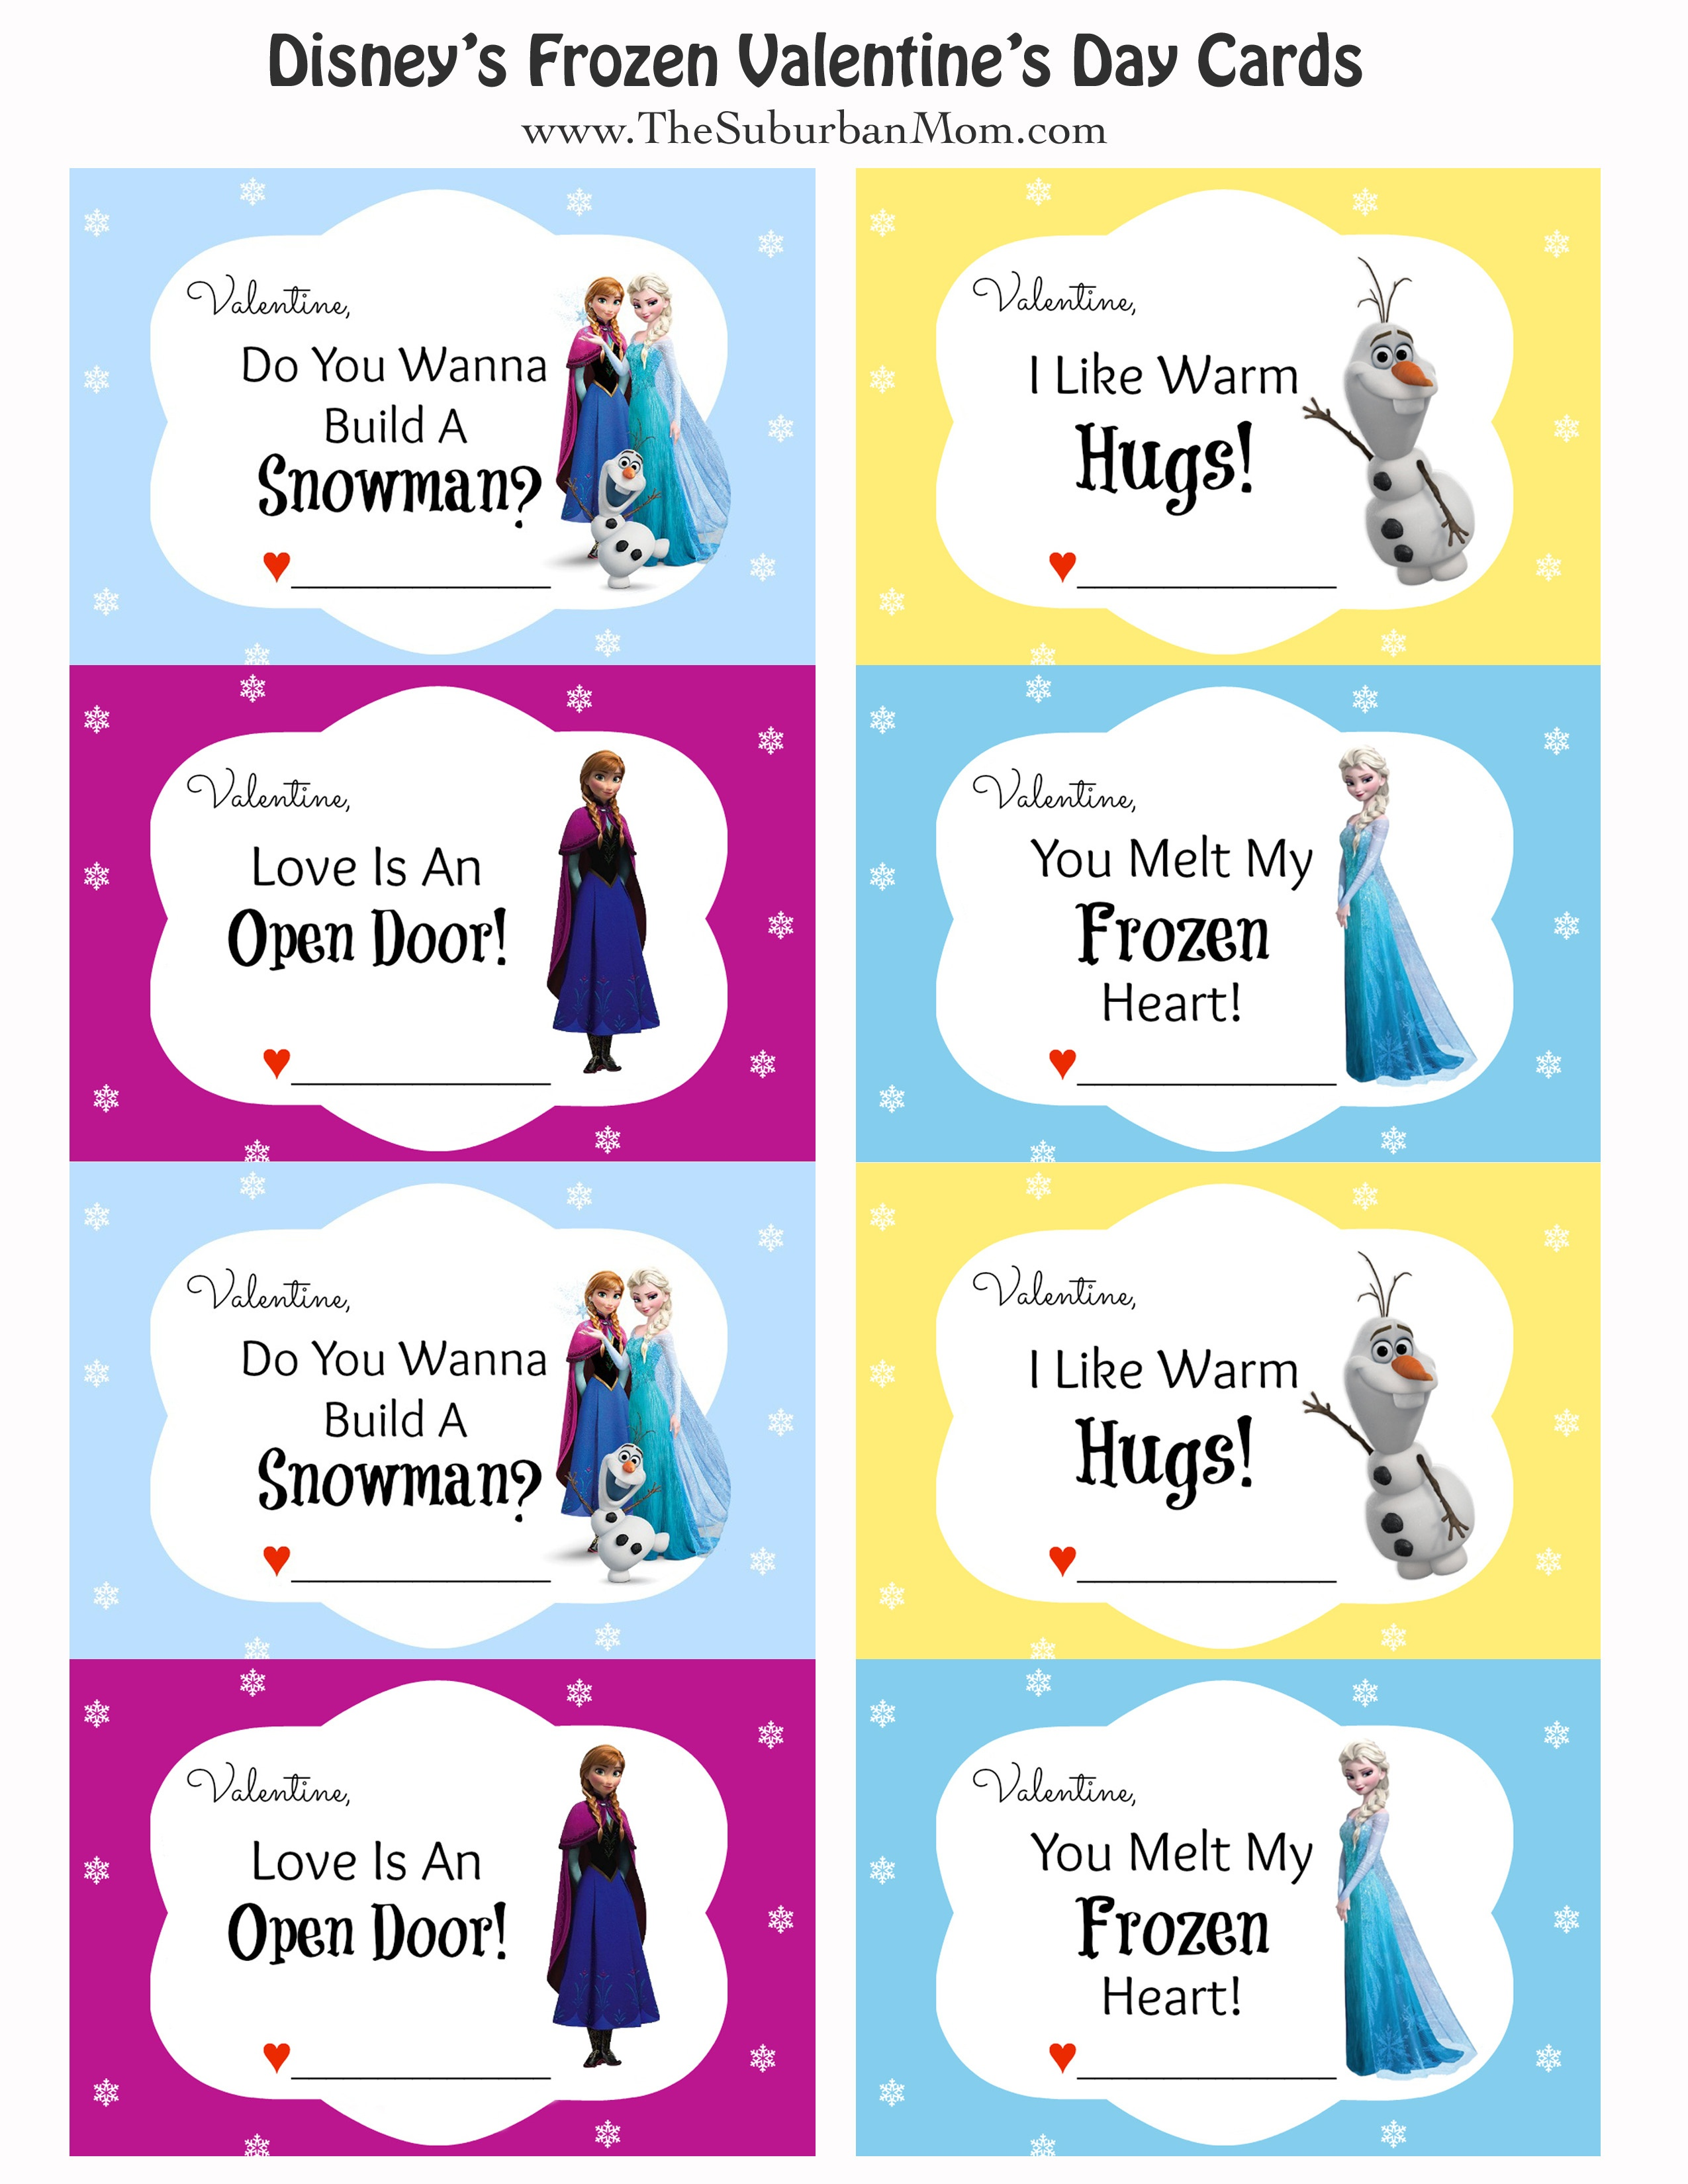 Free Printable Disney Frozen Valentine's Day Cards - Thesuburbanmom - Free Printable Football Valentines Day Cards